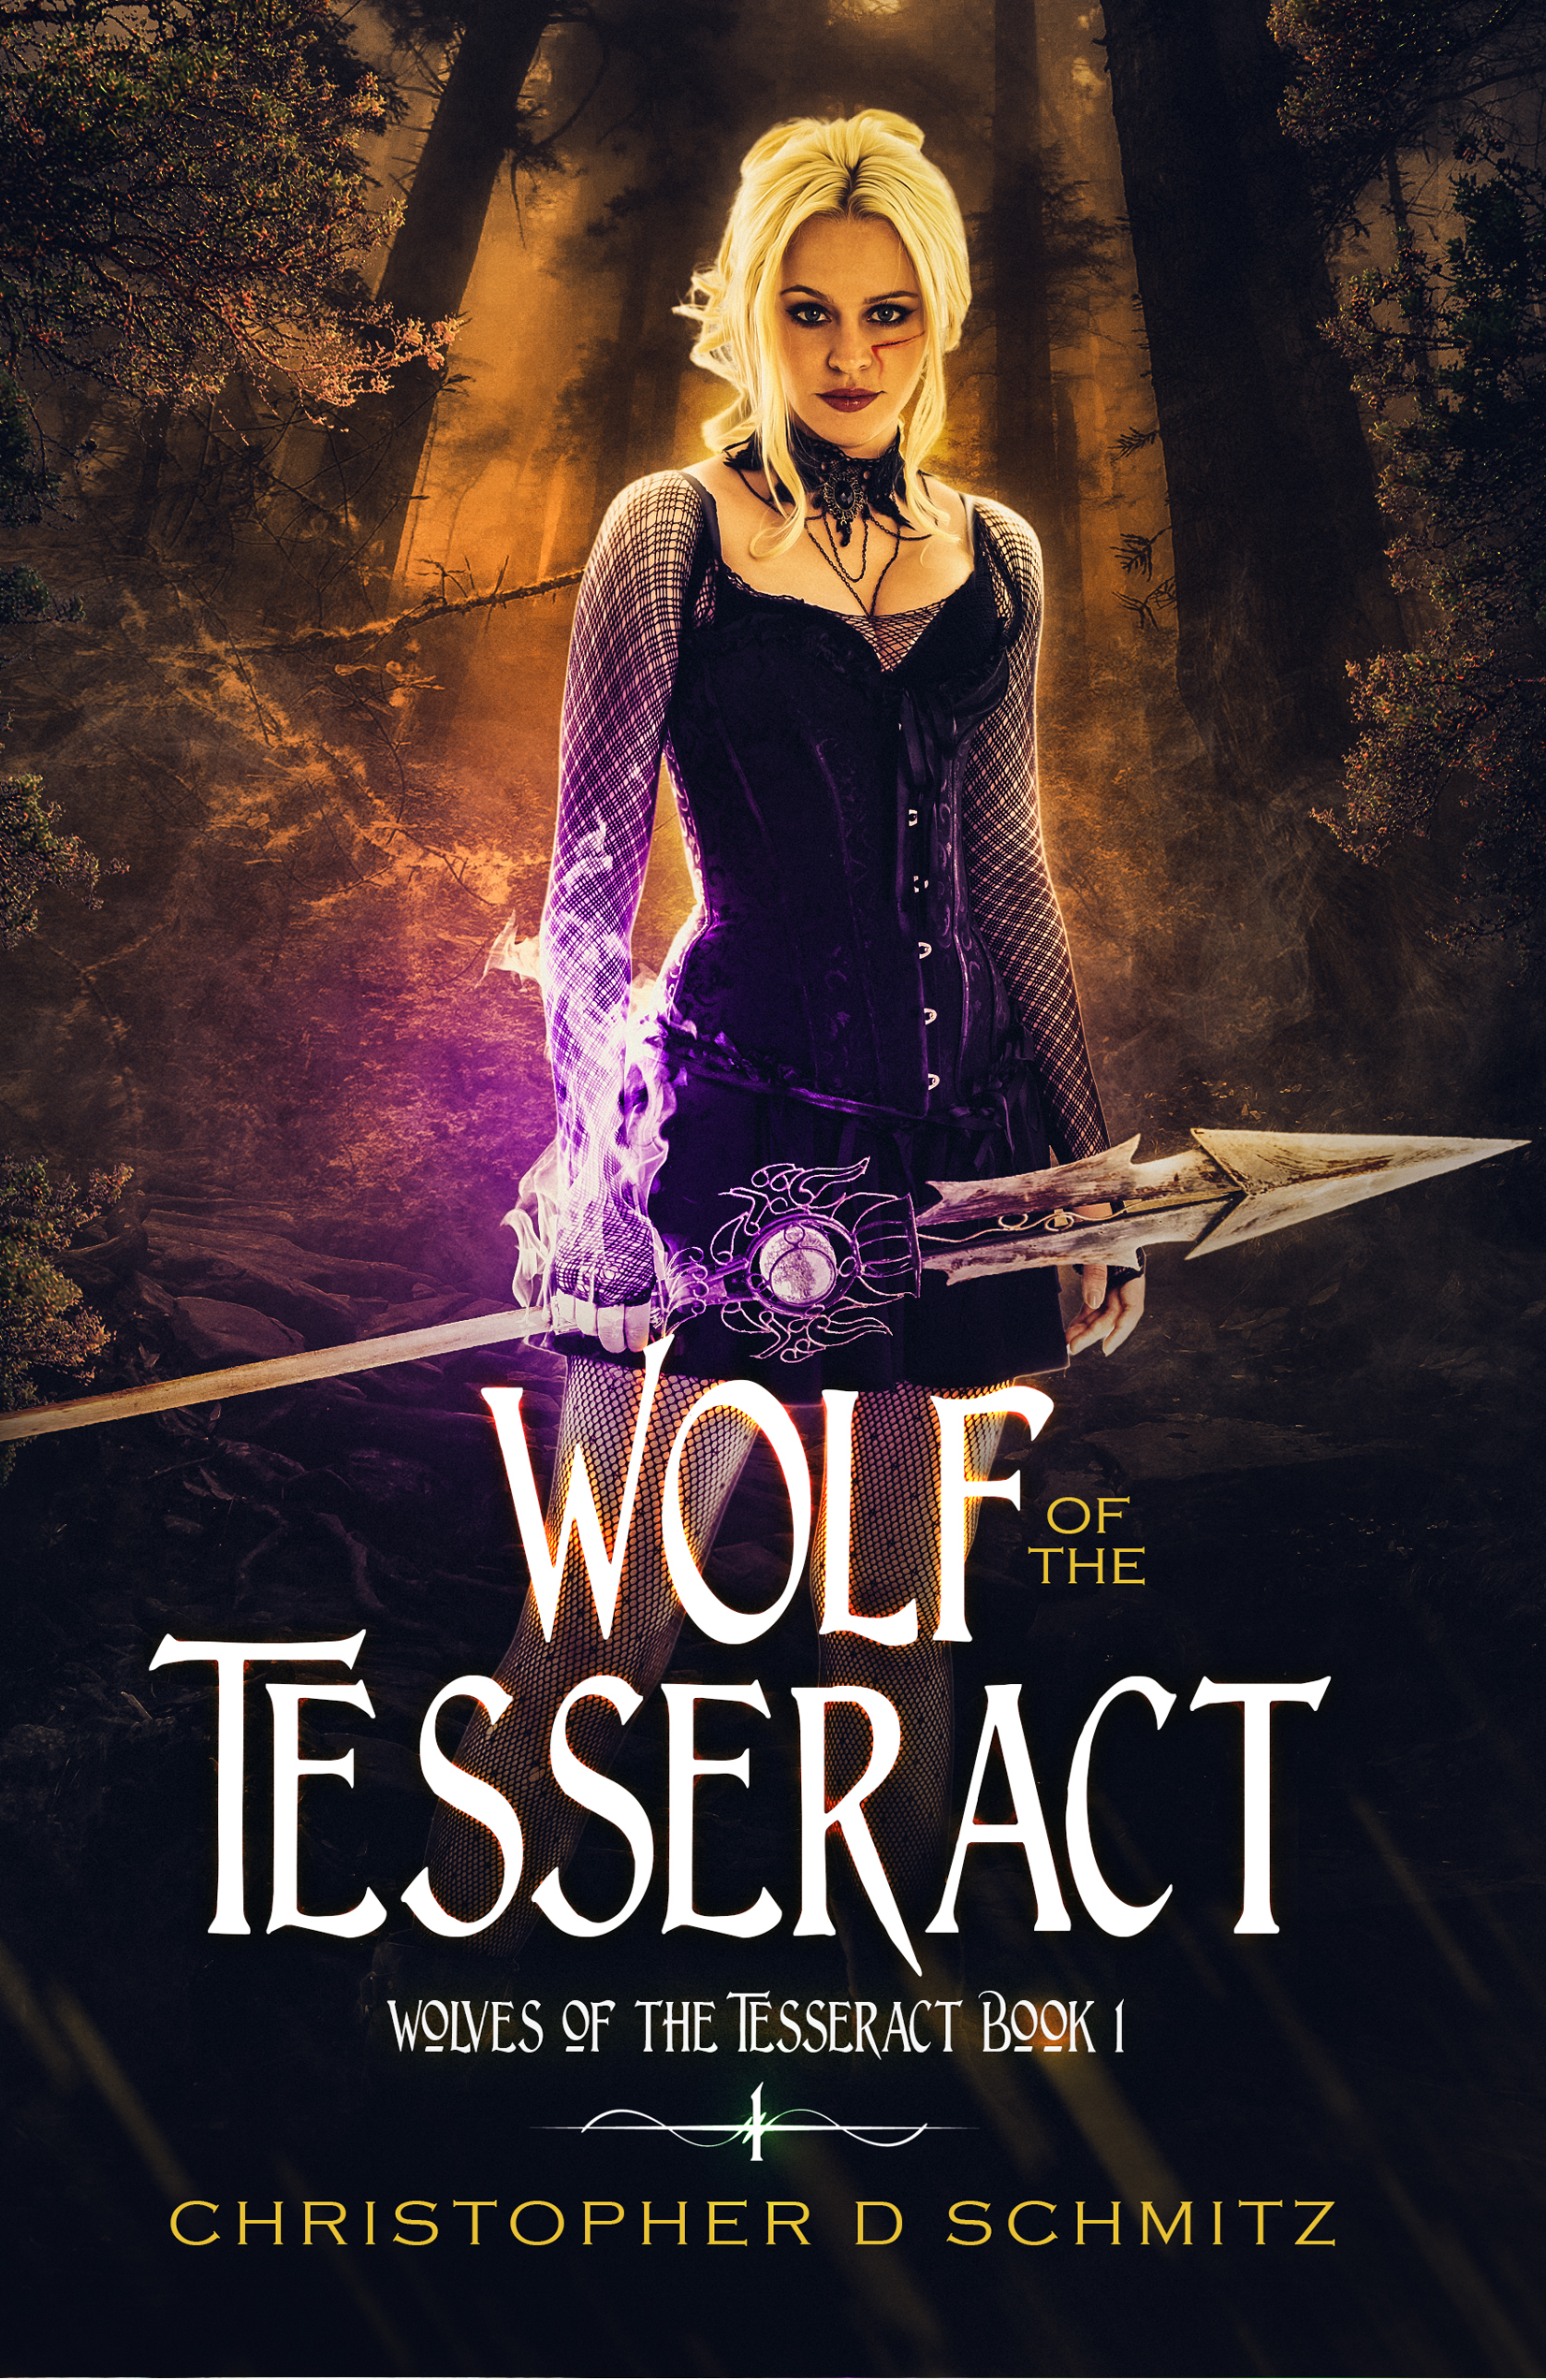 Wolf of the Tesseract by Christopher D. Schmitz